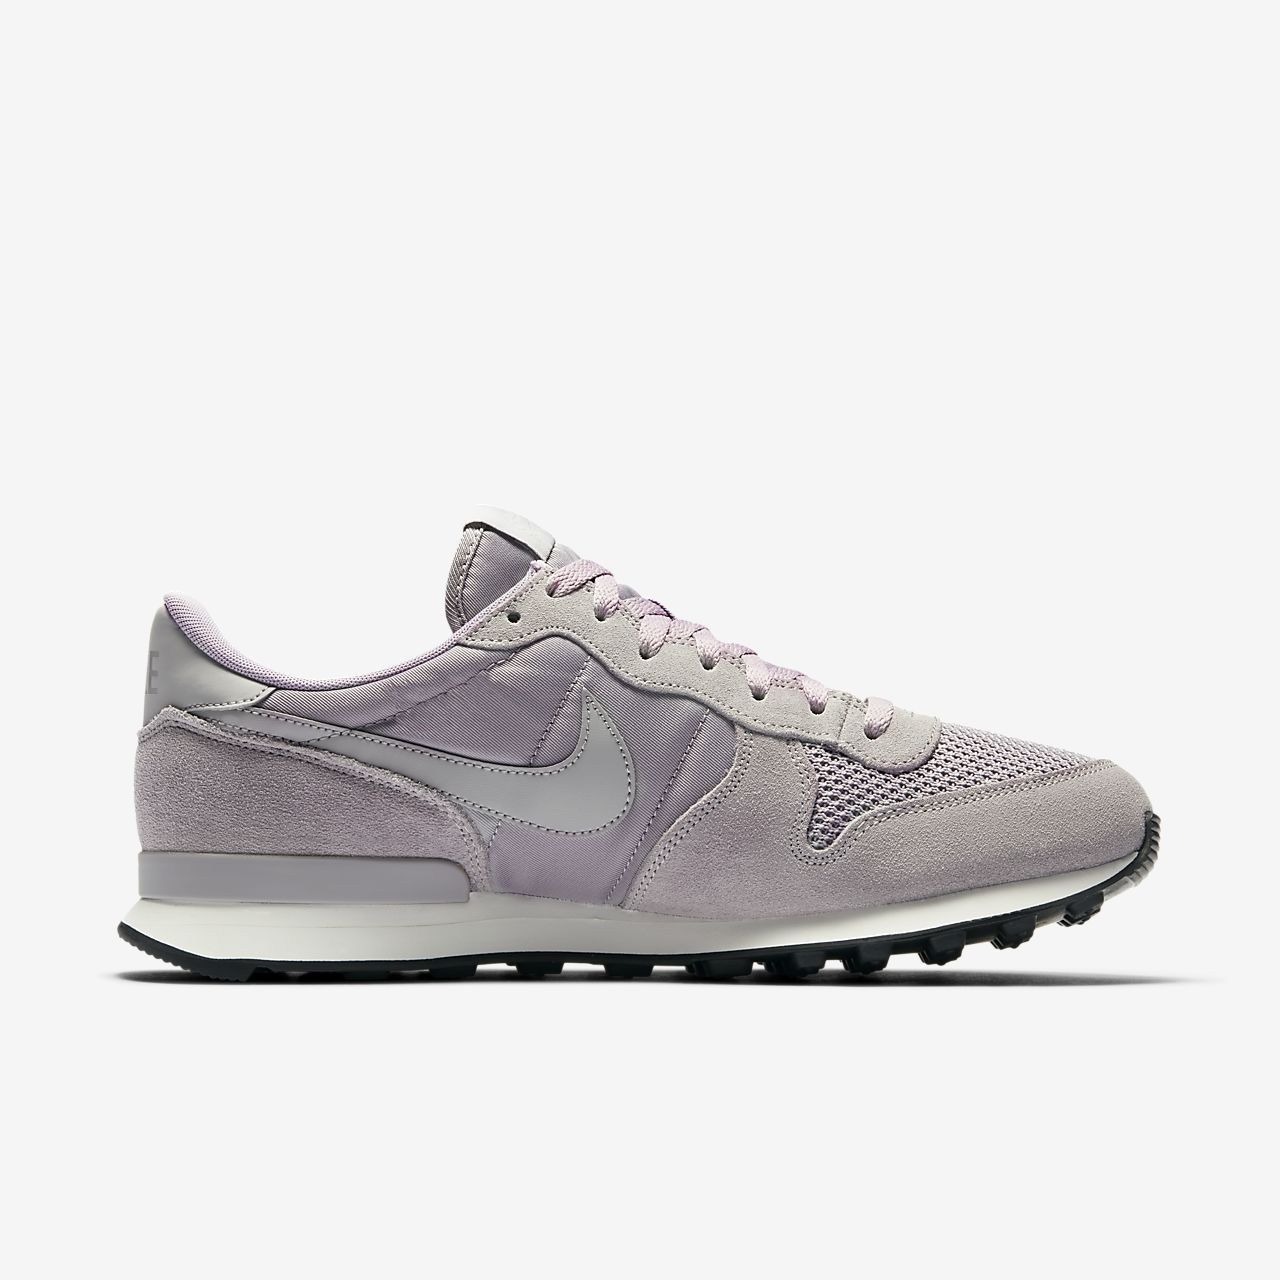 Nike Chaussures Noires Internationaliste Soi xtkF8